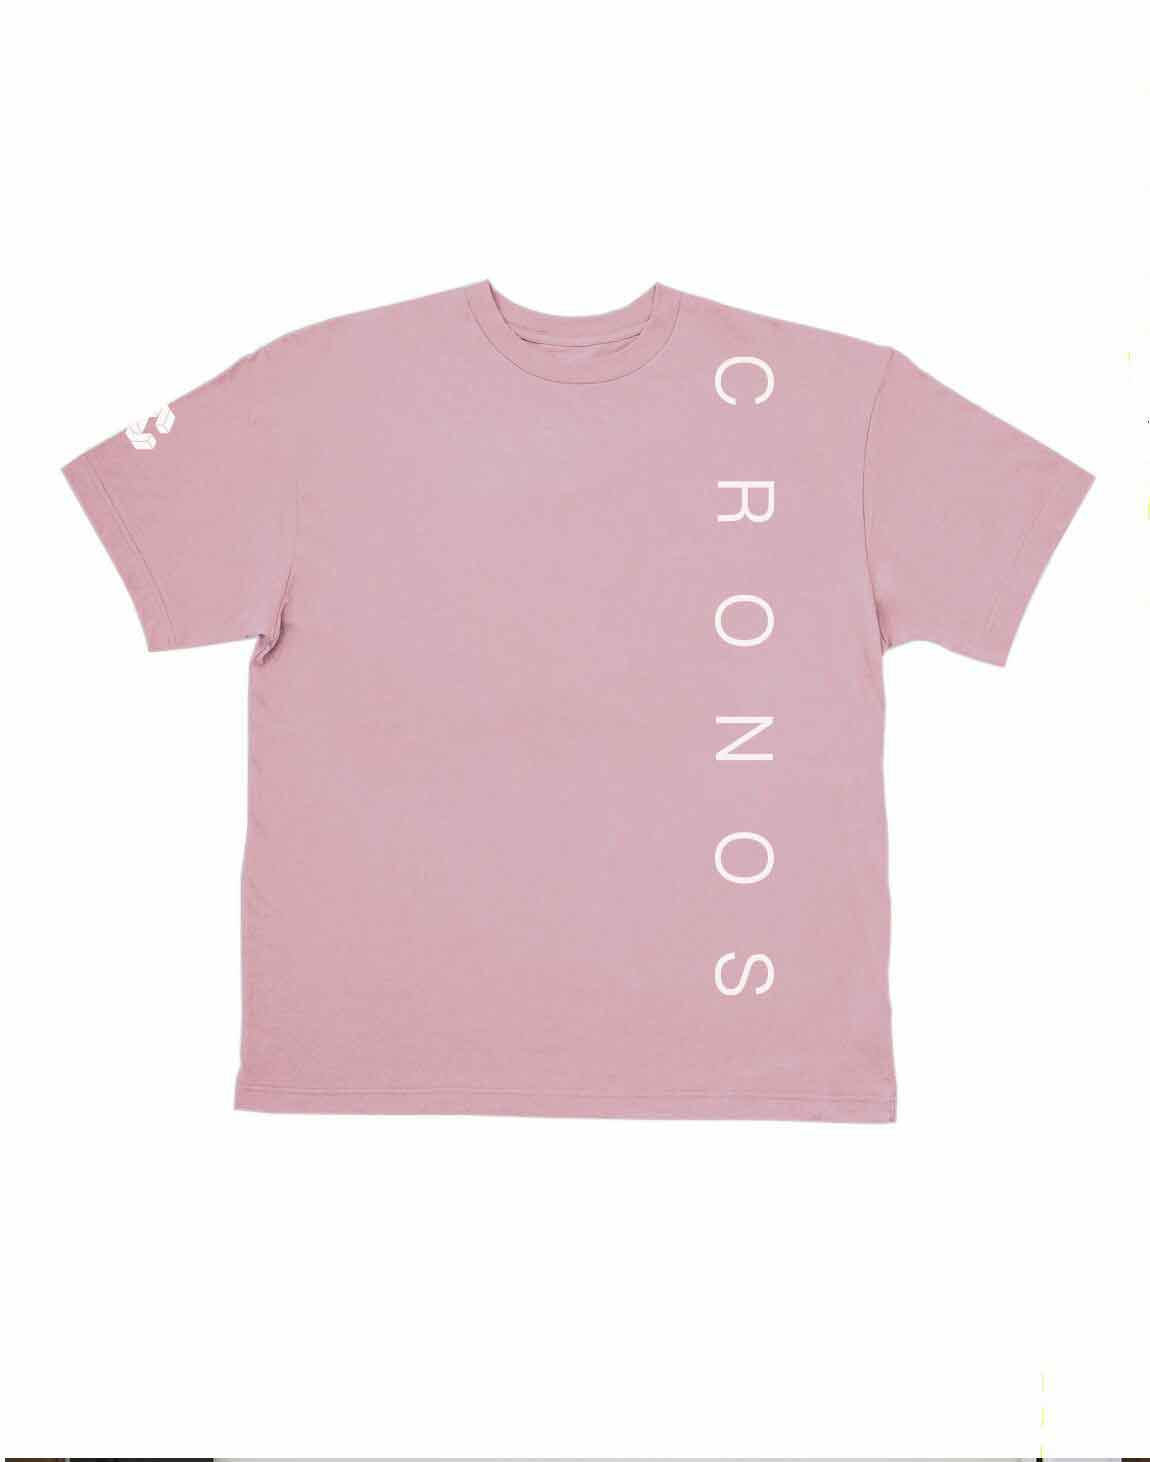 <img class='new_mark_img1' src='https://img.shop-pro.jp/img/new/icons1.gif' style='border:none;display:inline;margin:0px;padding:0px;width:auto;' />CRONOS SIMPLE LOGO T-SHIRTS【PINK】